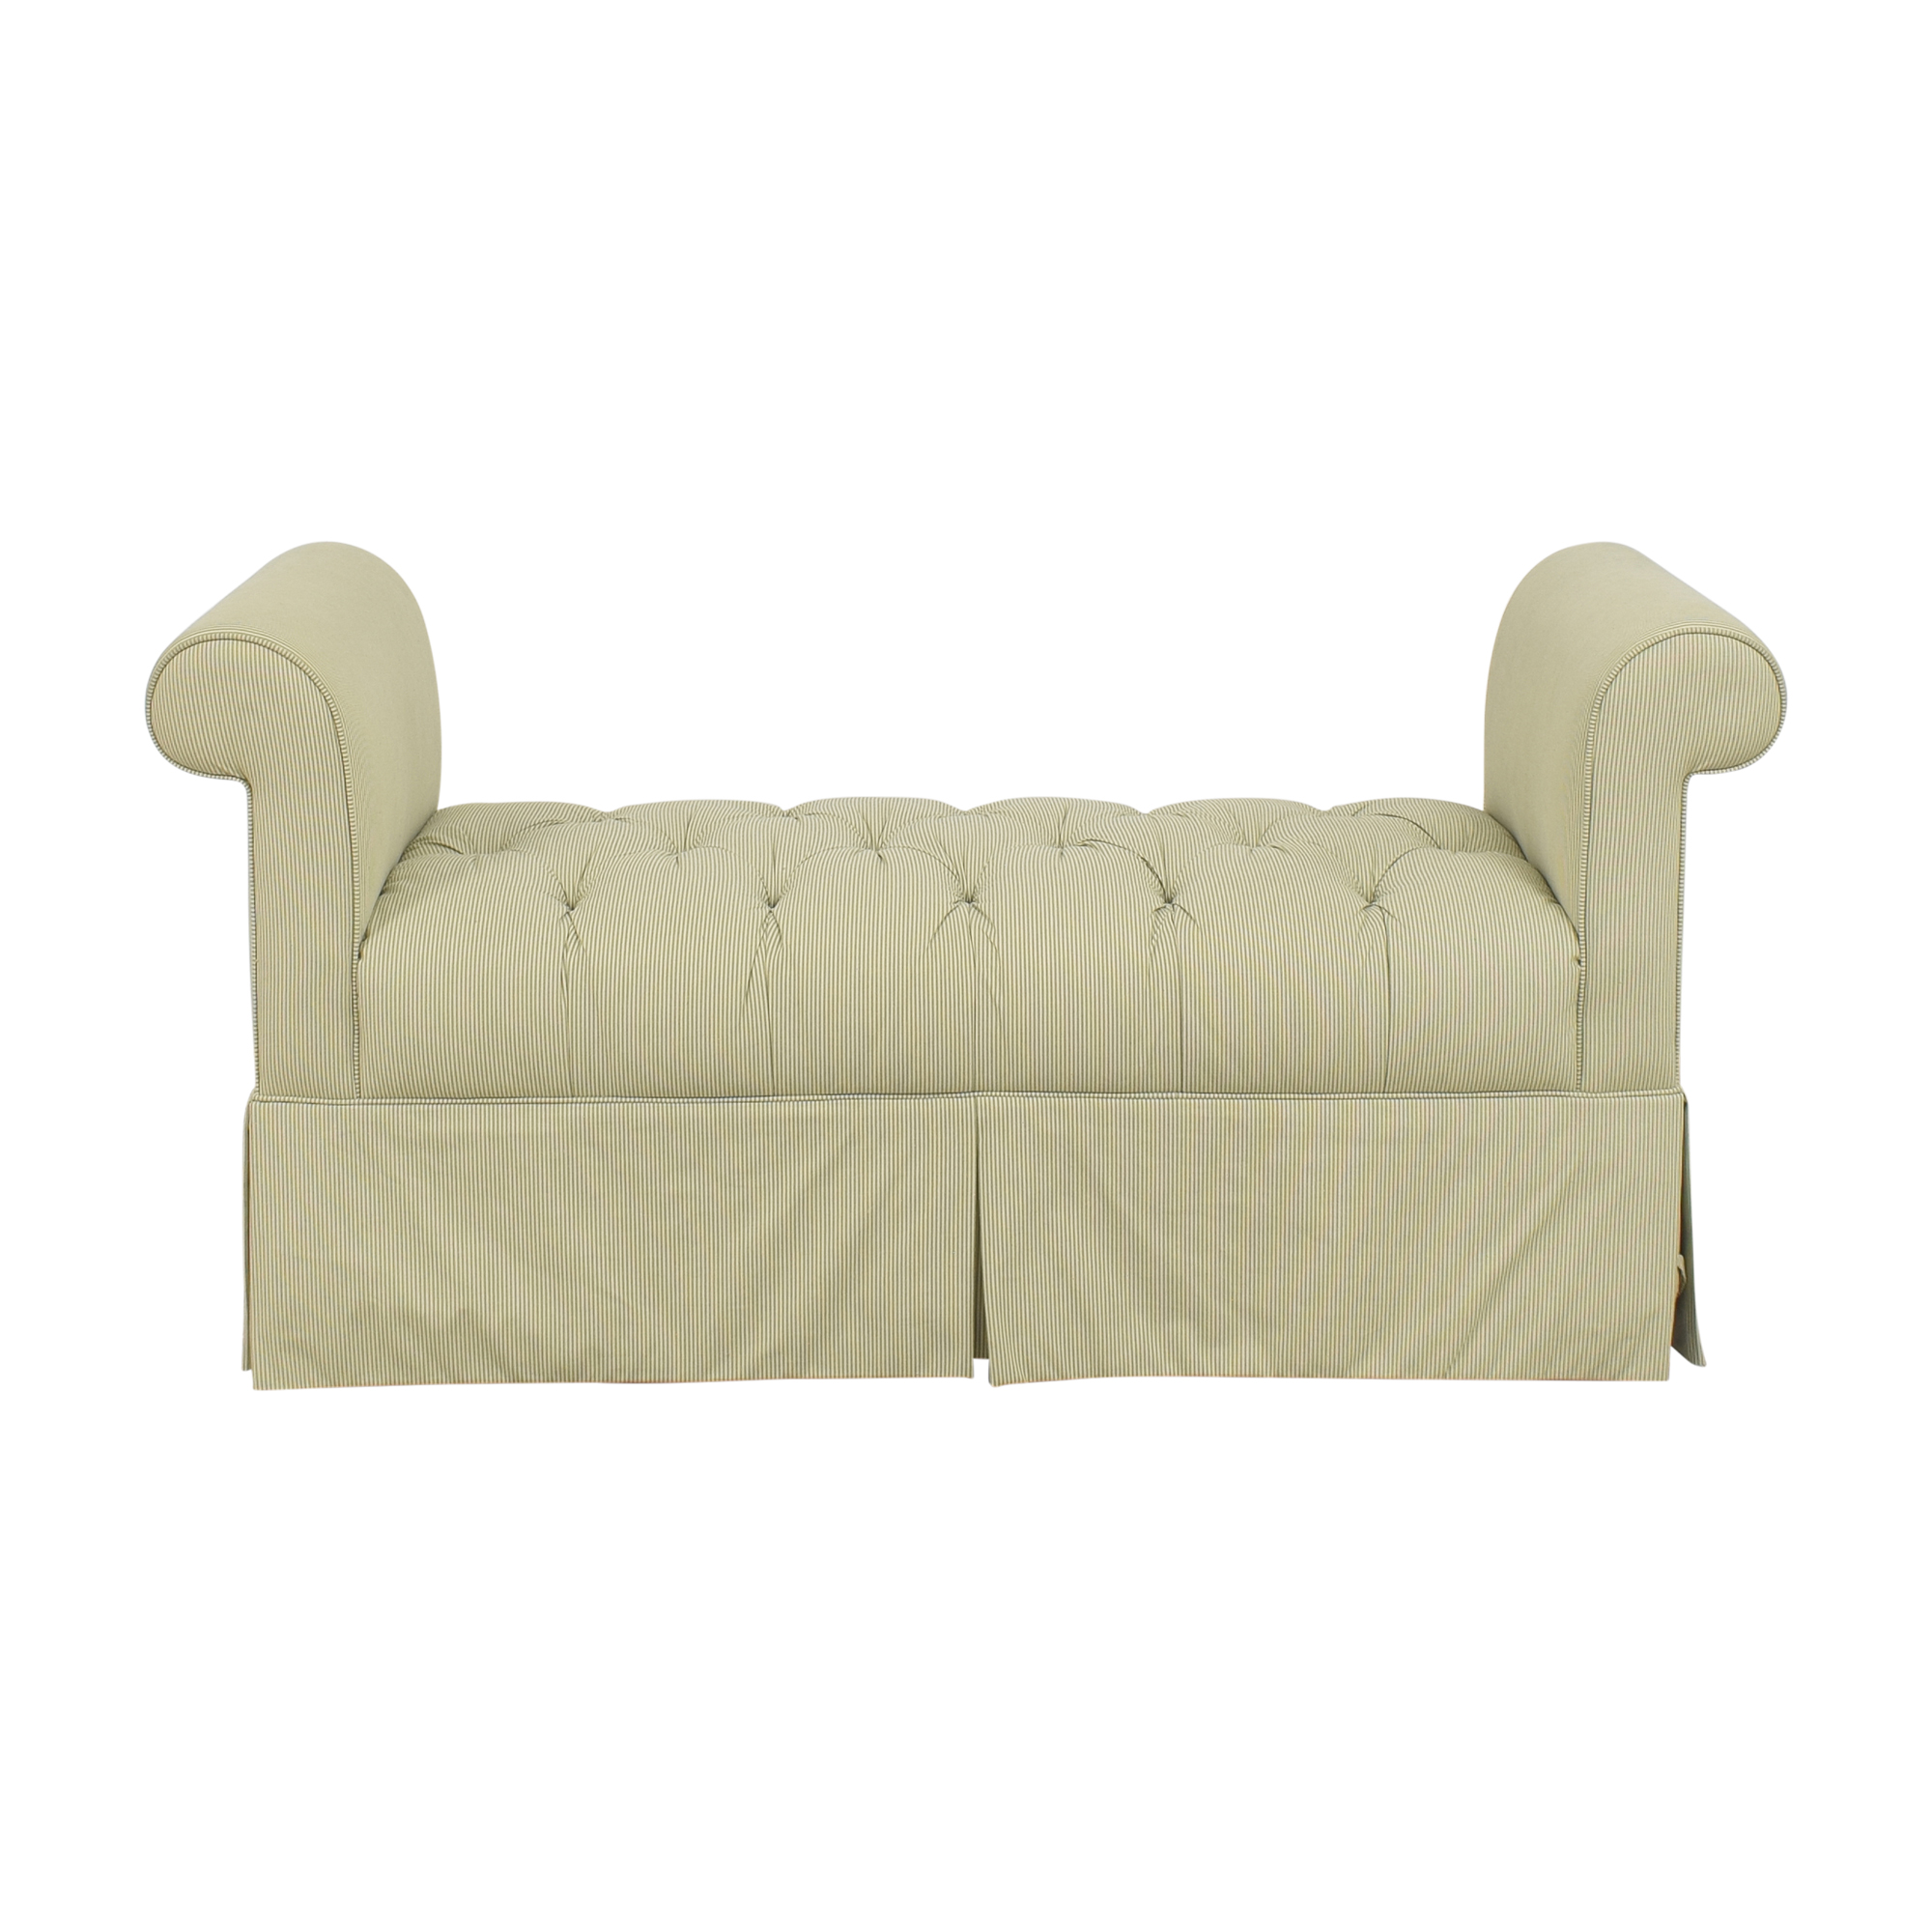 Ethan Allen Tufted Skirted Bench / Chairs